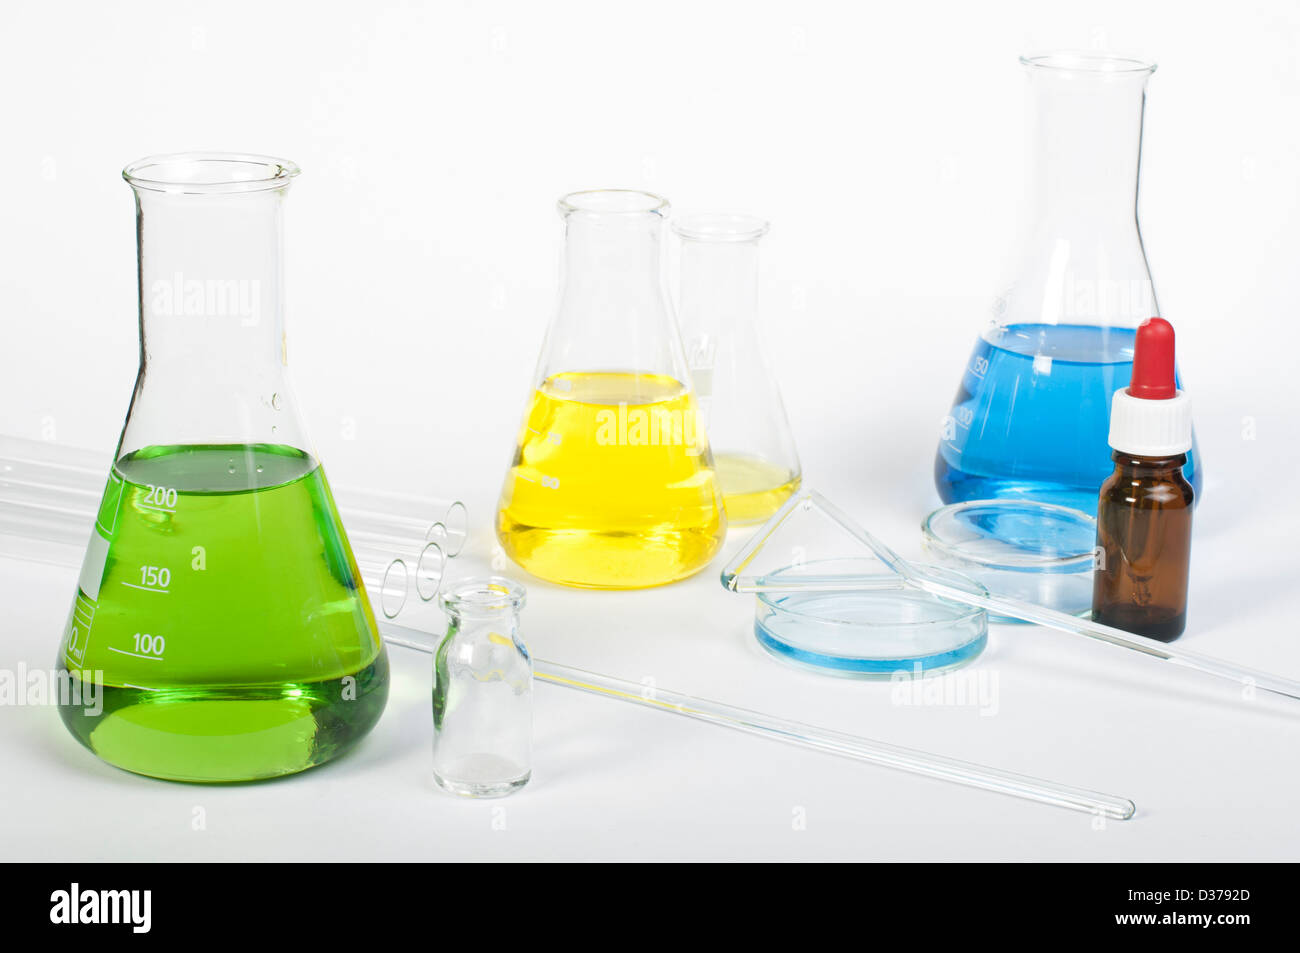 Laboratory glassware equipment. Laboratory beakers filled with colored liquid substances Stock Photo